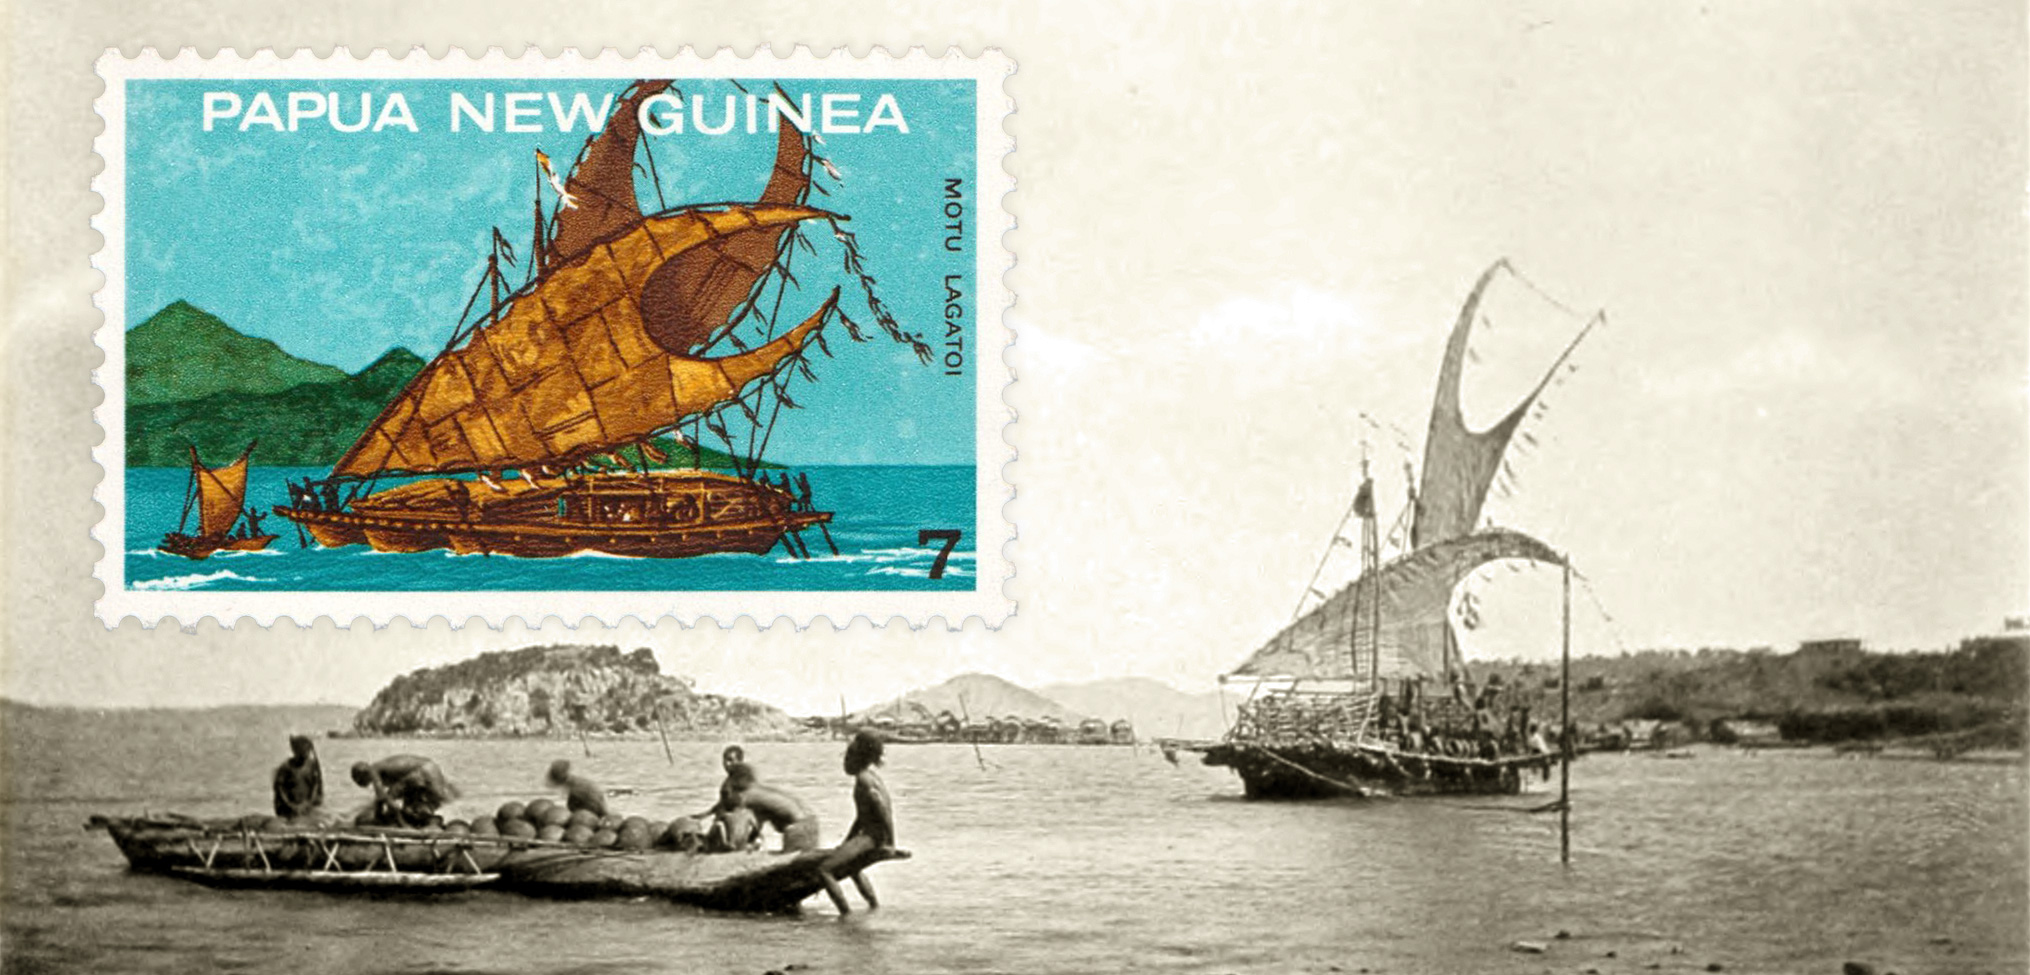 The lagatoi traditional canoe, featured on this seven-cent stamp from 1975, has been a predominant theme in Papuan philately. Stamp image used with permission from Post PNG Ltd, background photo courtesy of Wikimedia